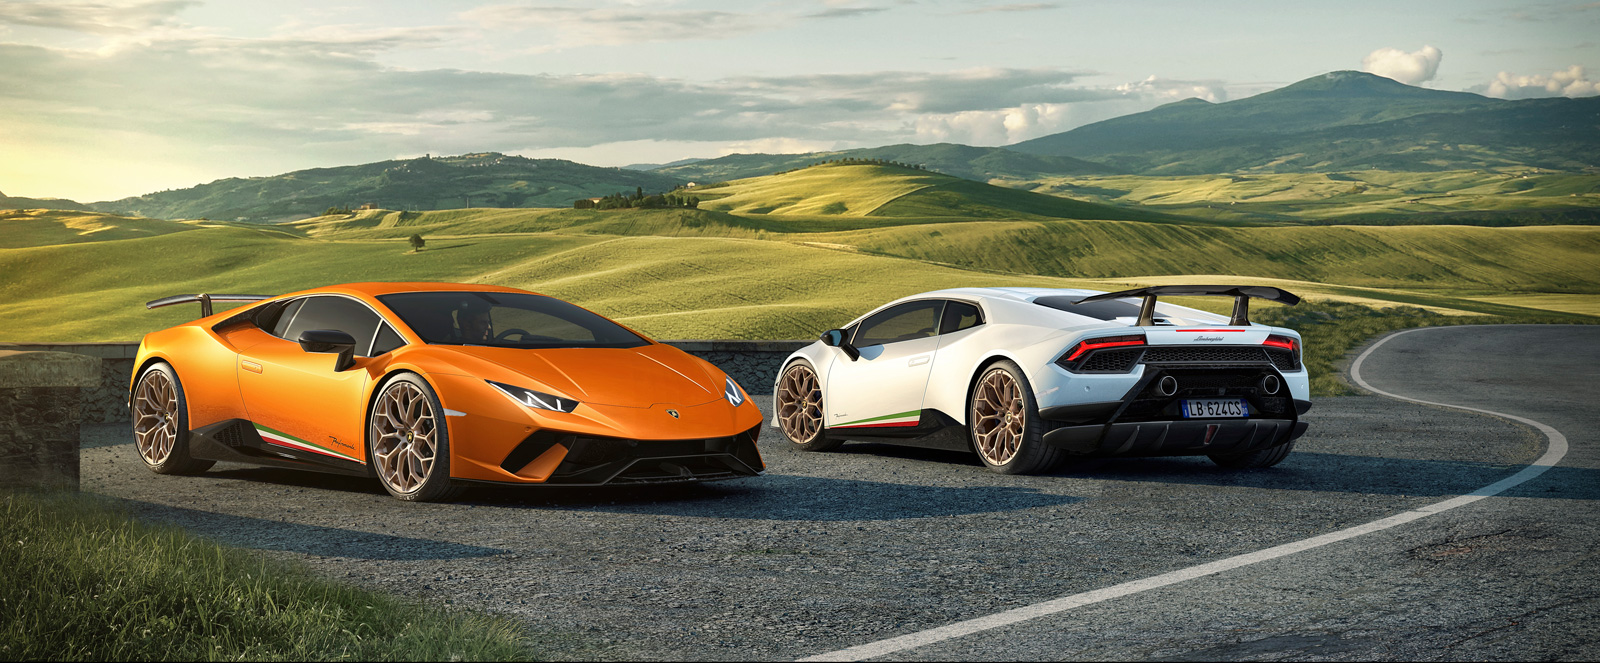 The Record-Smashing Lamborghini Huracan Performante is a Bargain for LamBros